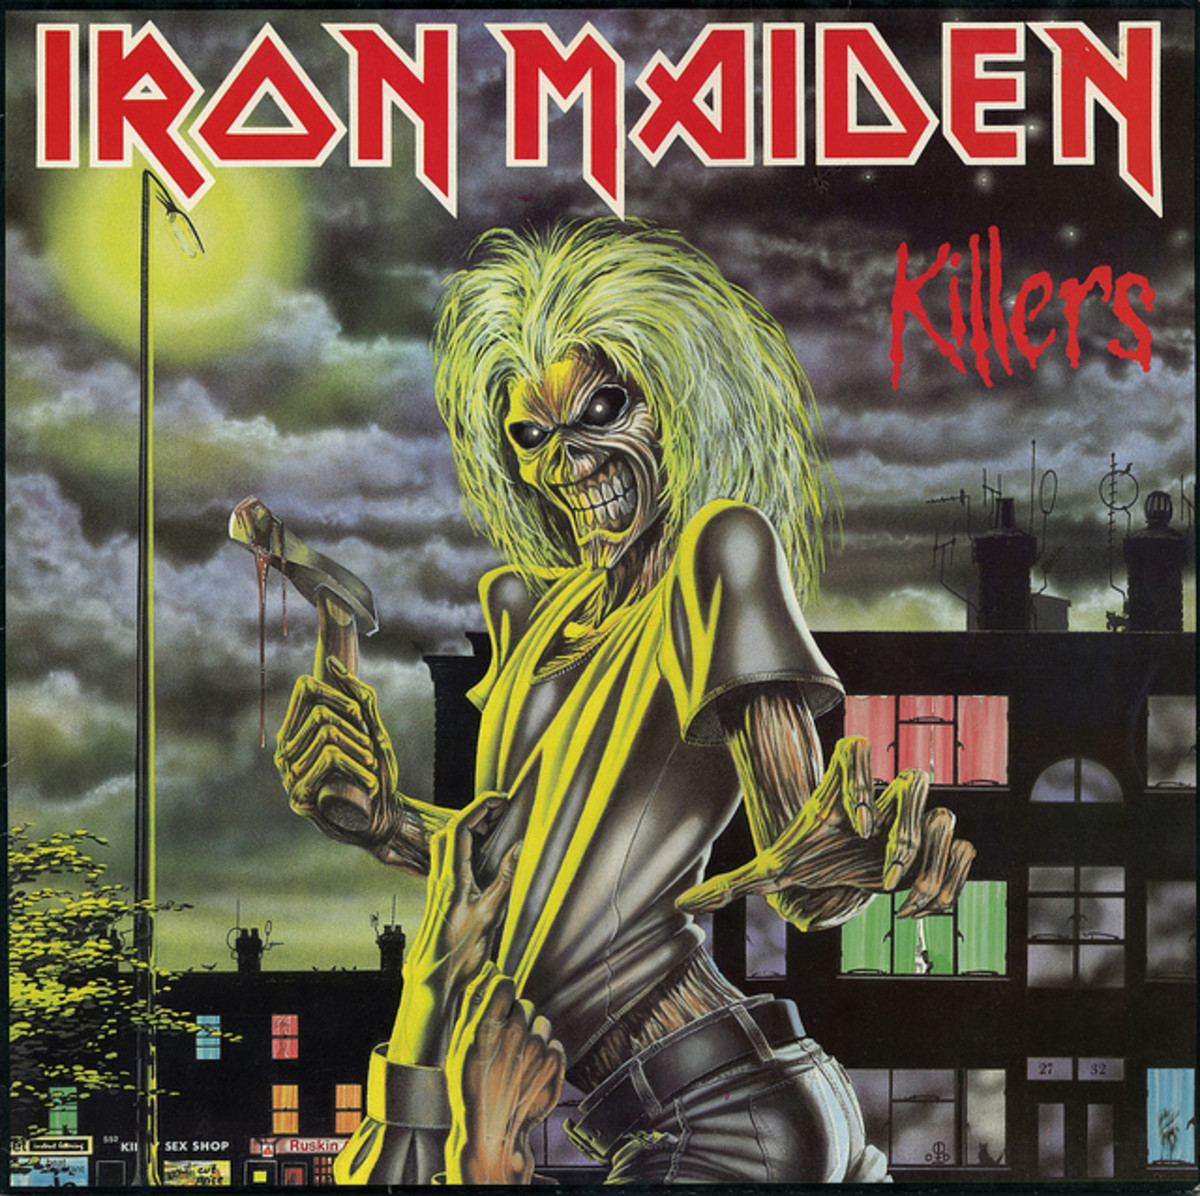 "Iron Maiden ""Killers"" Capitol Records ST-12141  12"" LP Vinyl Record U.S. Pressing (1981) Album Cover Art by Derek Riggs"